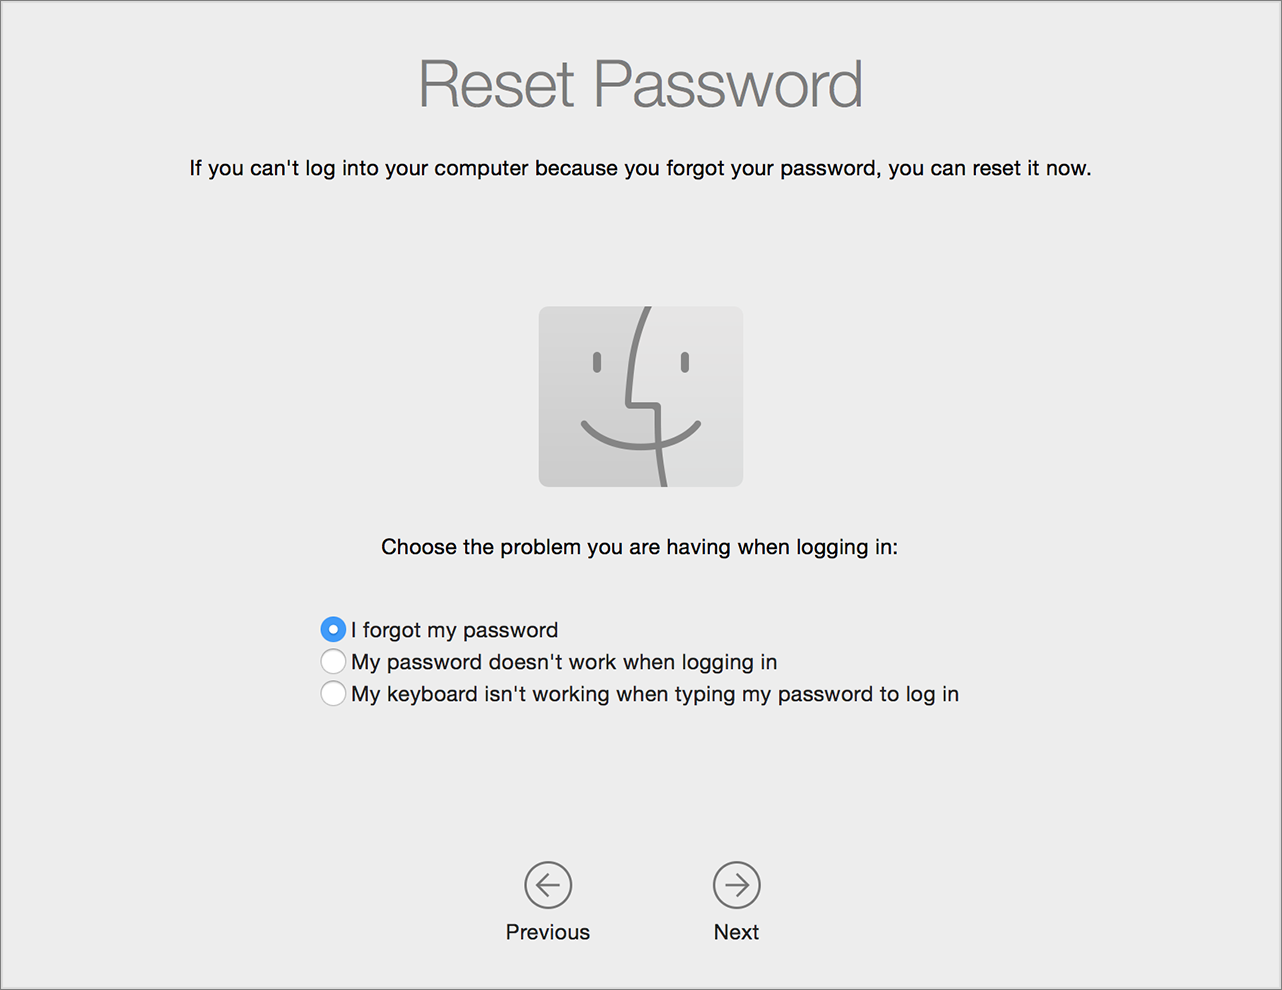 reset the password using your Apple ID